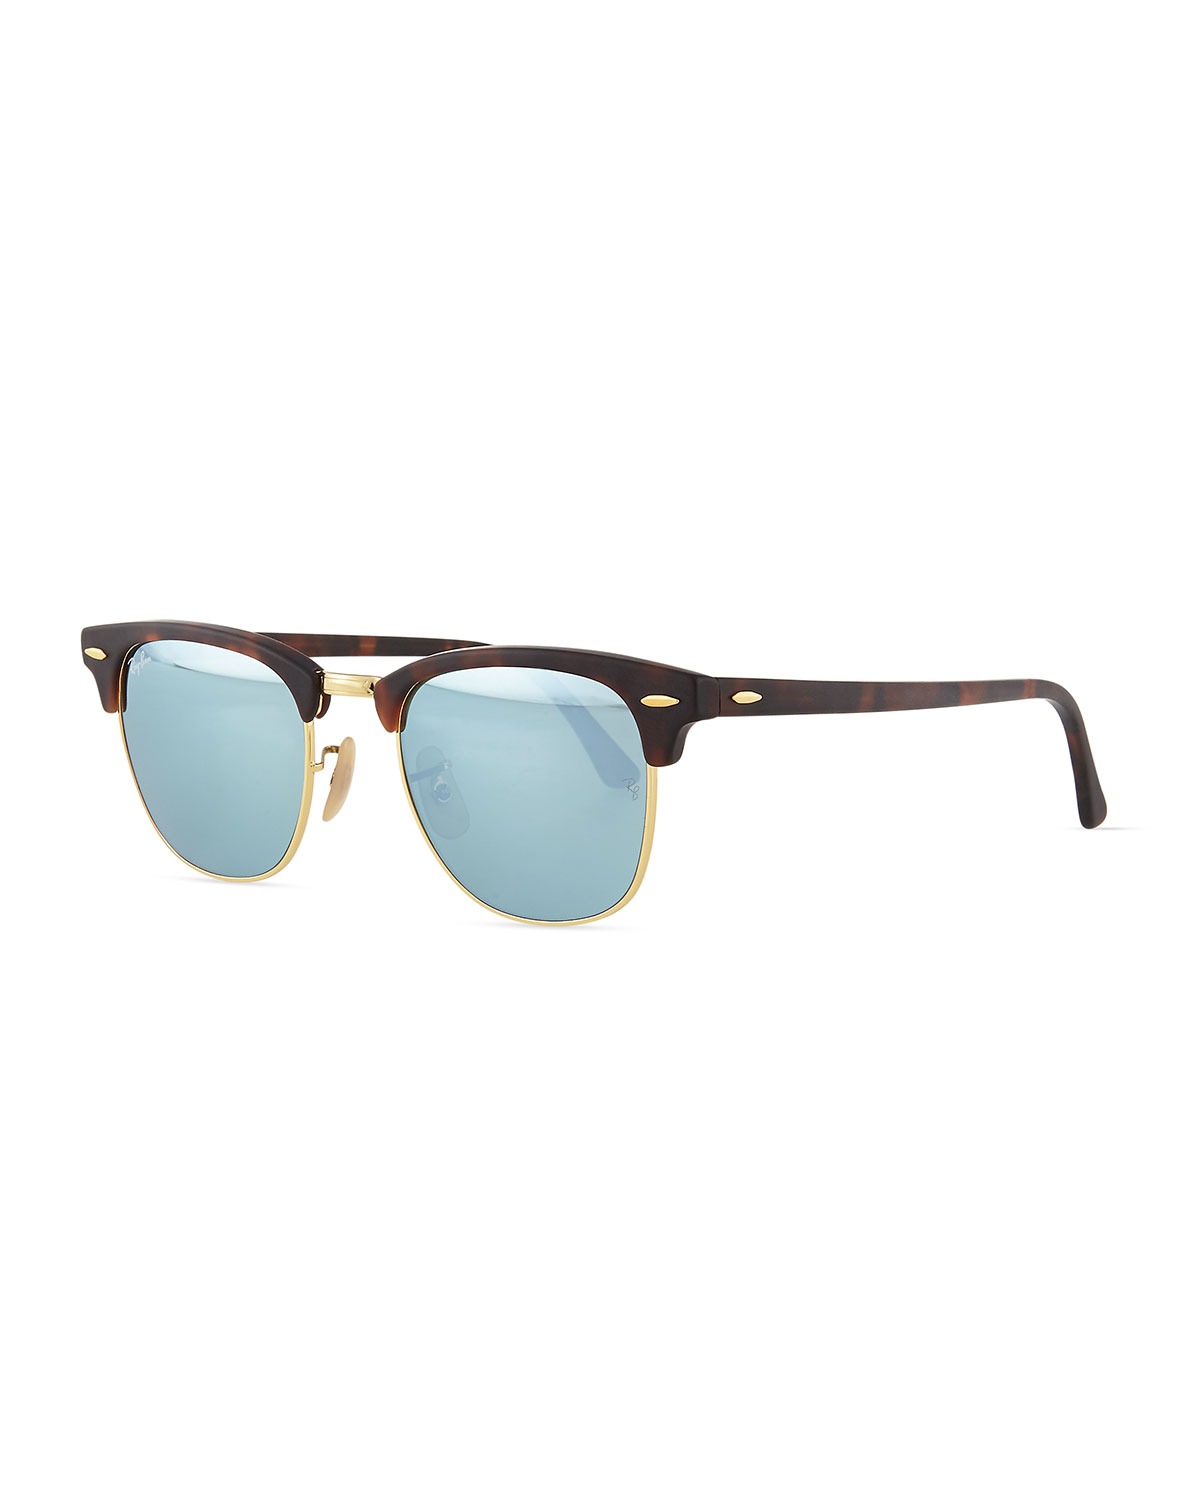 Clubmaster Half-Rimmed Sunglasses, Tortoise/Silver - Ray-Ban